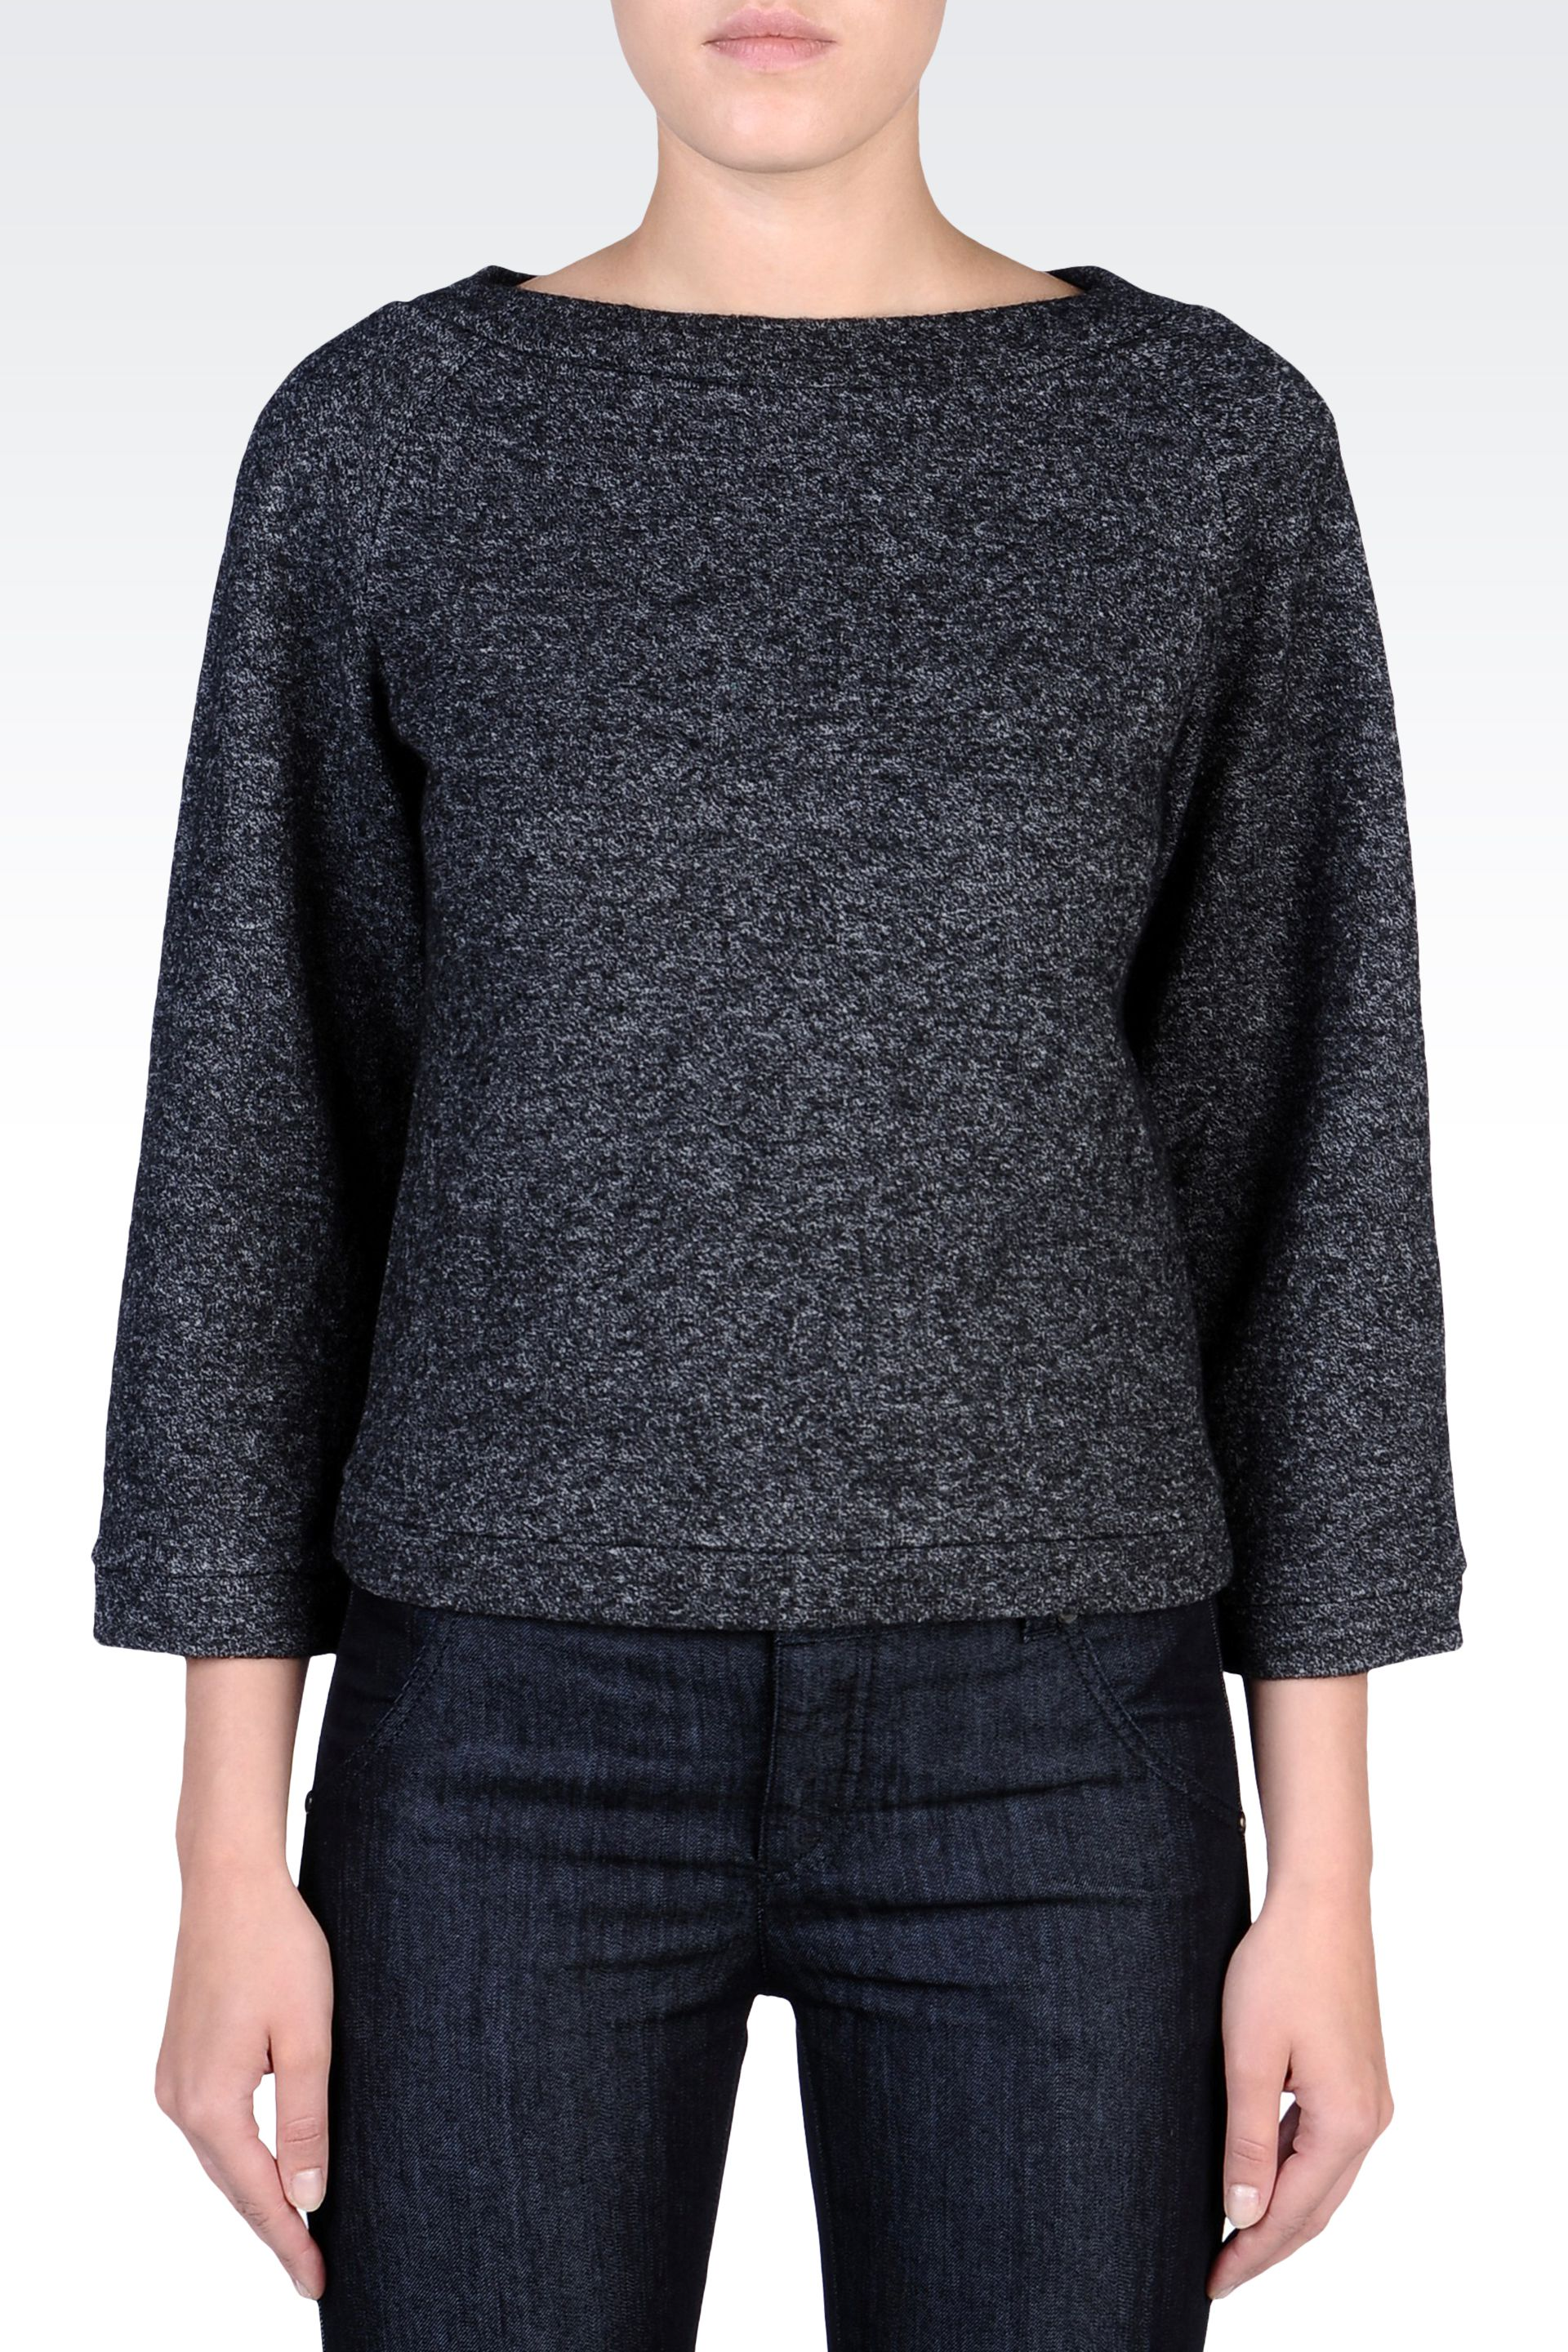 emporio armani sweater in melange wool with boat neck in. Black Bedroom Furniture Sets. Home Design Ideas